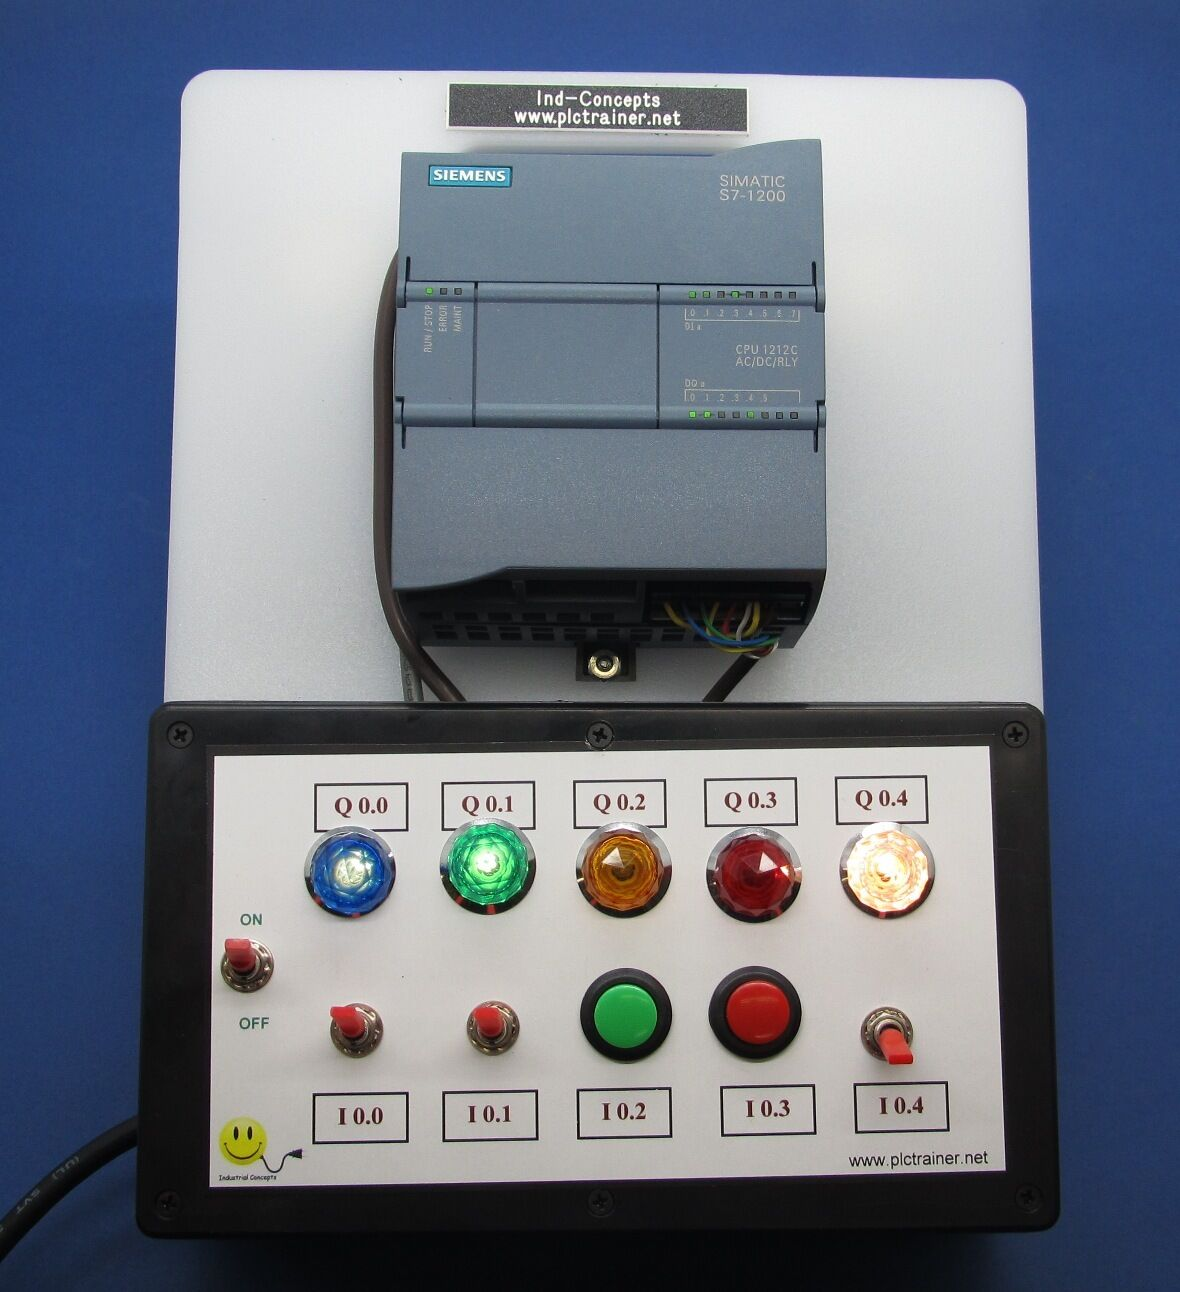 Siemens S7 1200 PLC Trainer, Cable, Software, Ethernet, TIA Portal V15  Basic | Shopping Bin - Search eBay faster